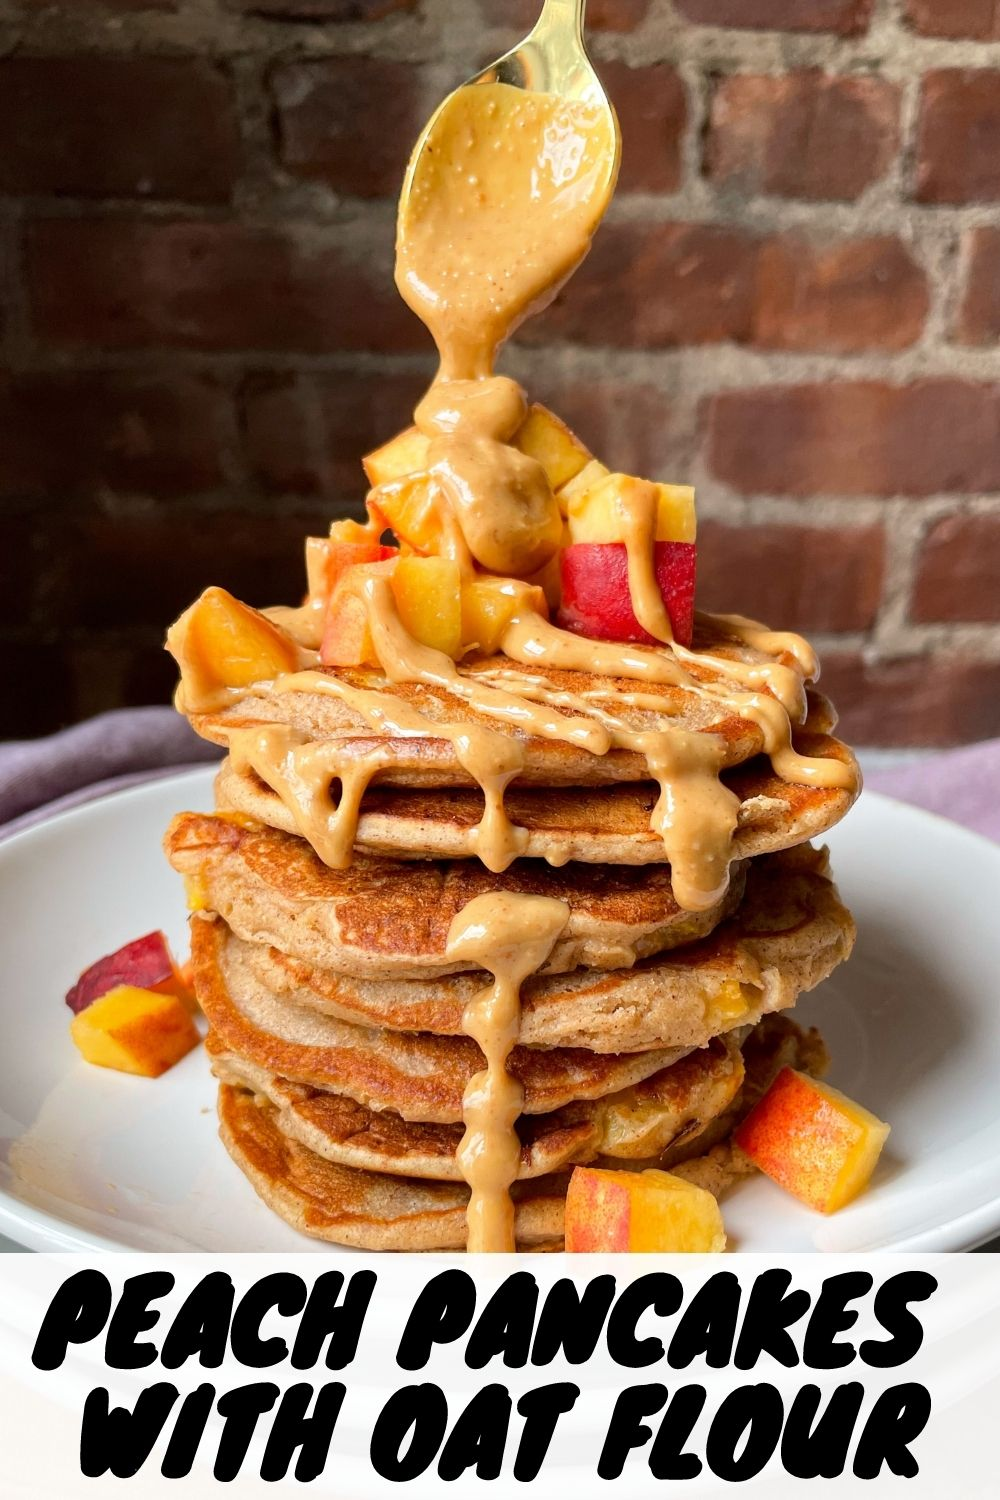 peach pancakes with spoon and peanut butter